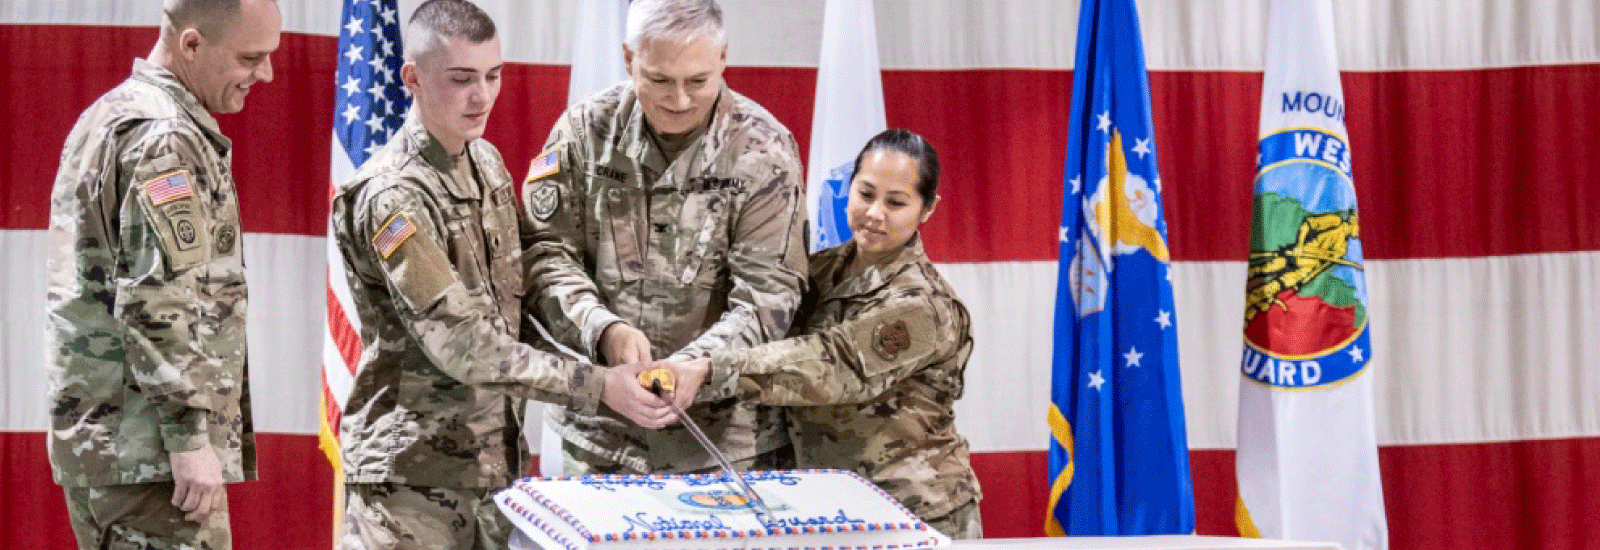 When Is the National Guard Birthday?